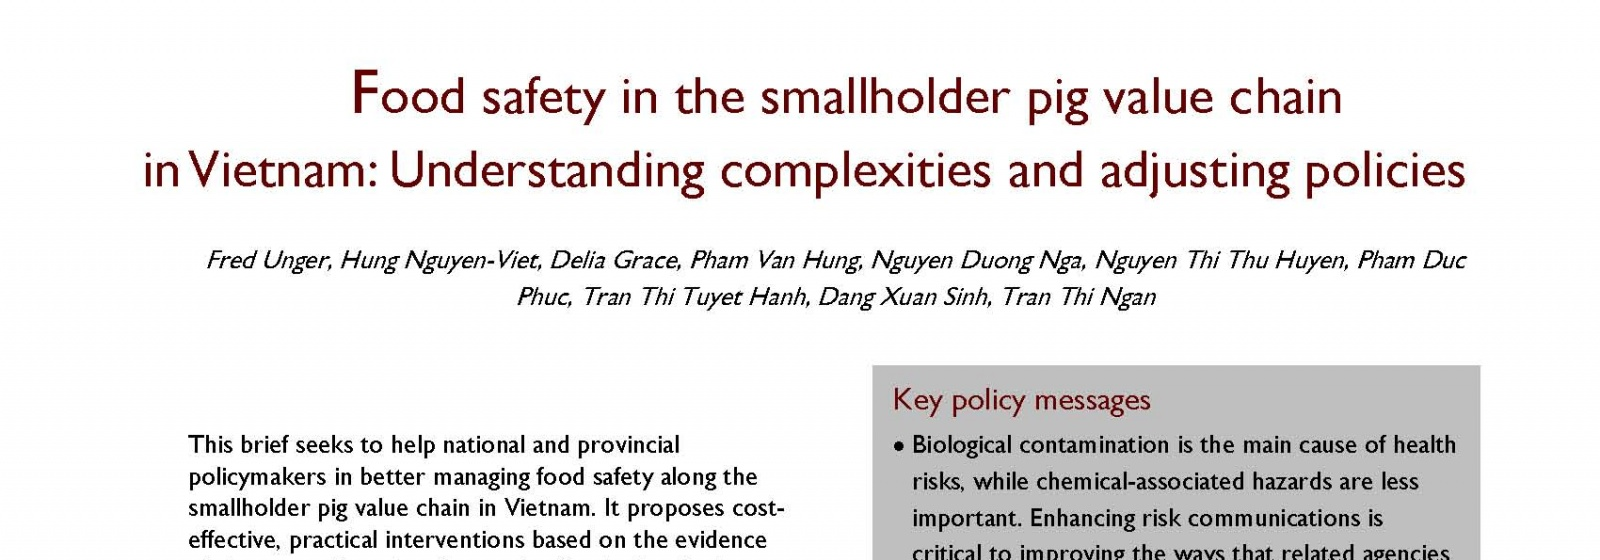 ILRI policy brief on food safety in the smallholder pig